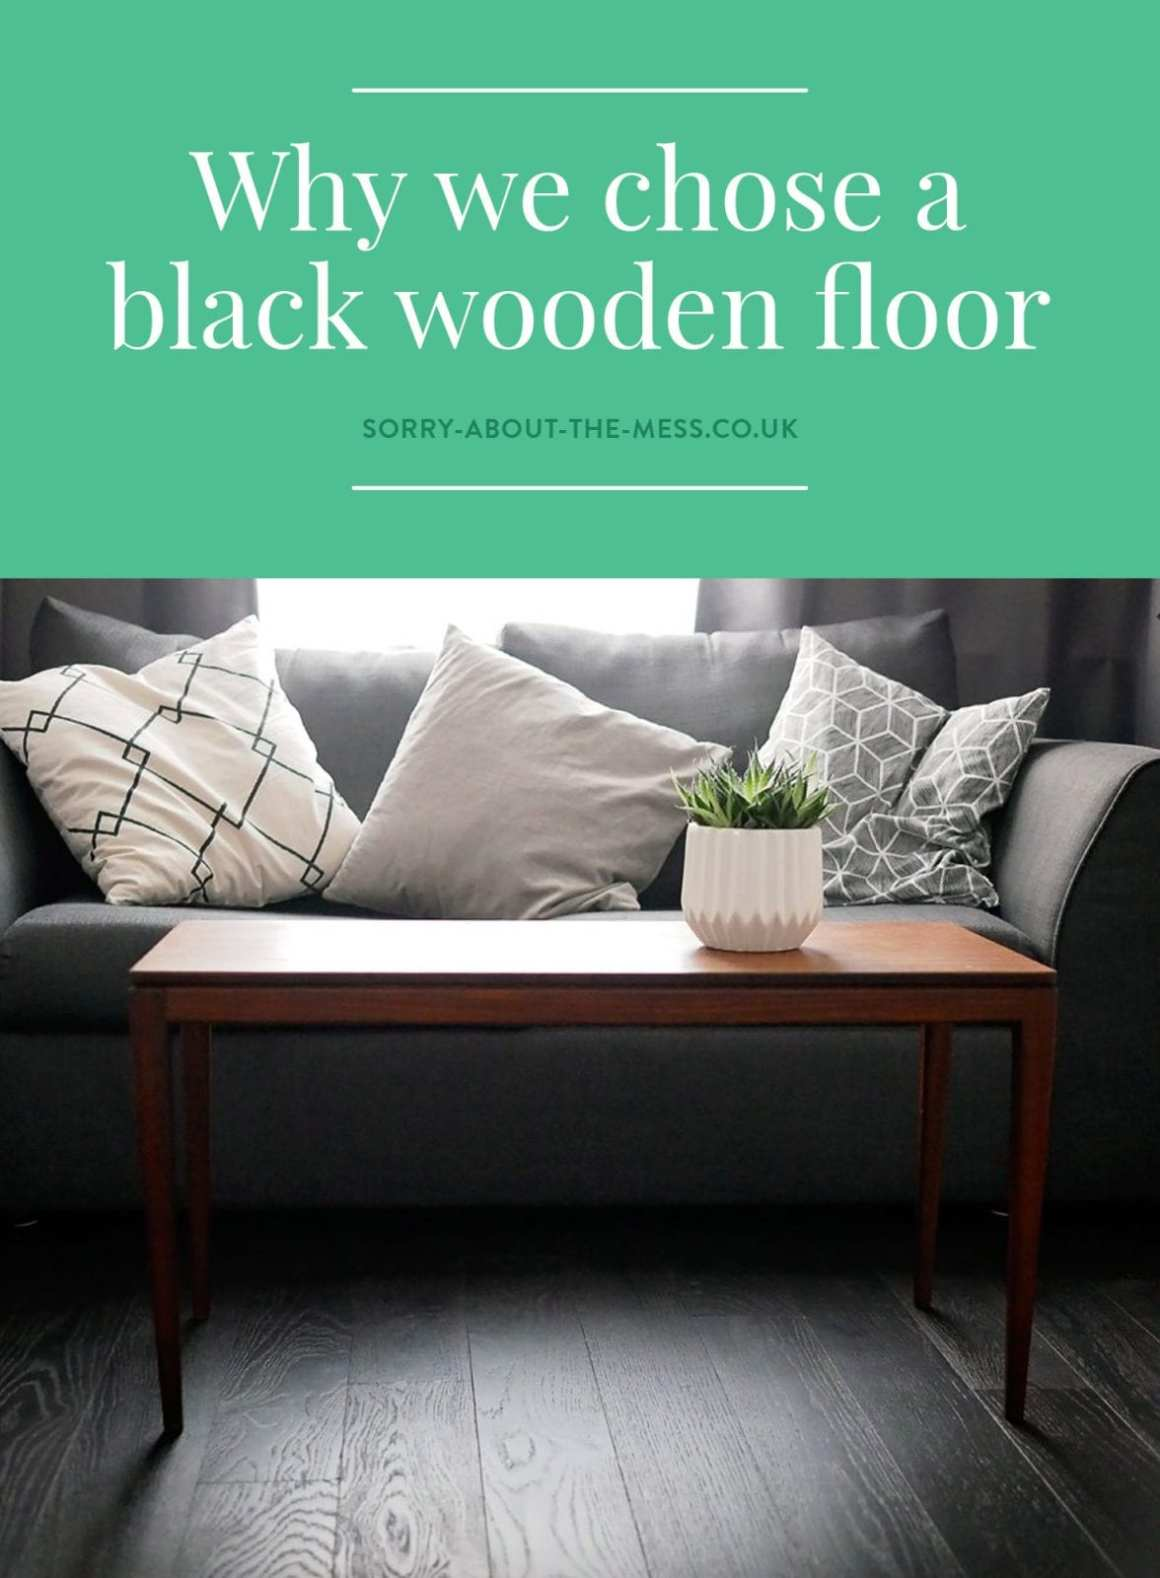 Why we chose a black wood floor. Black engineered wood floor as part of our living room decor